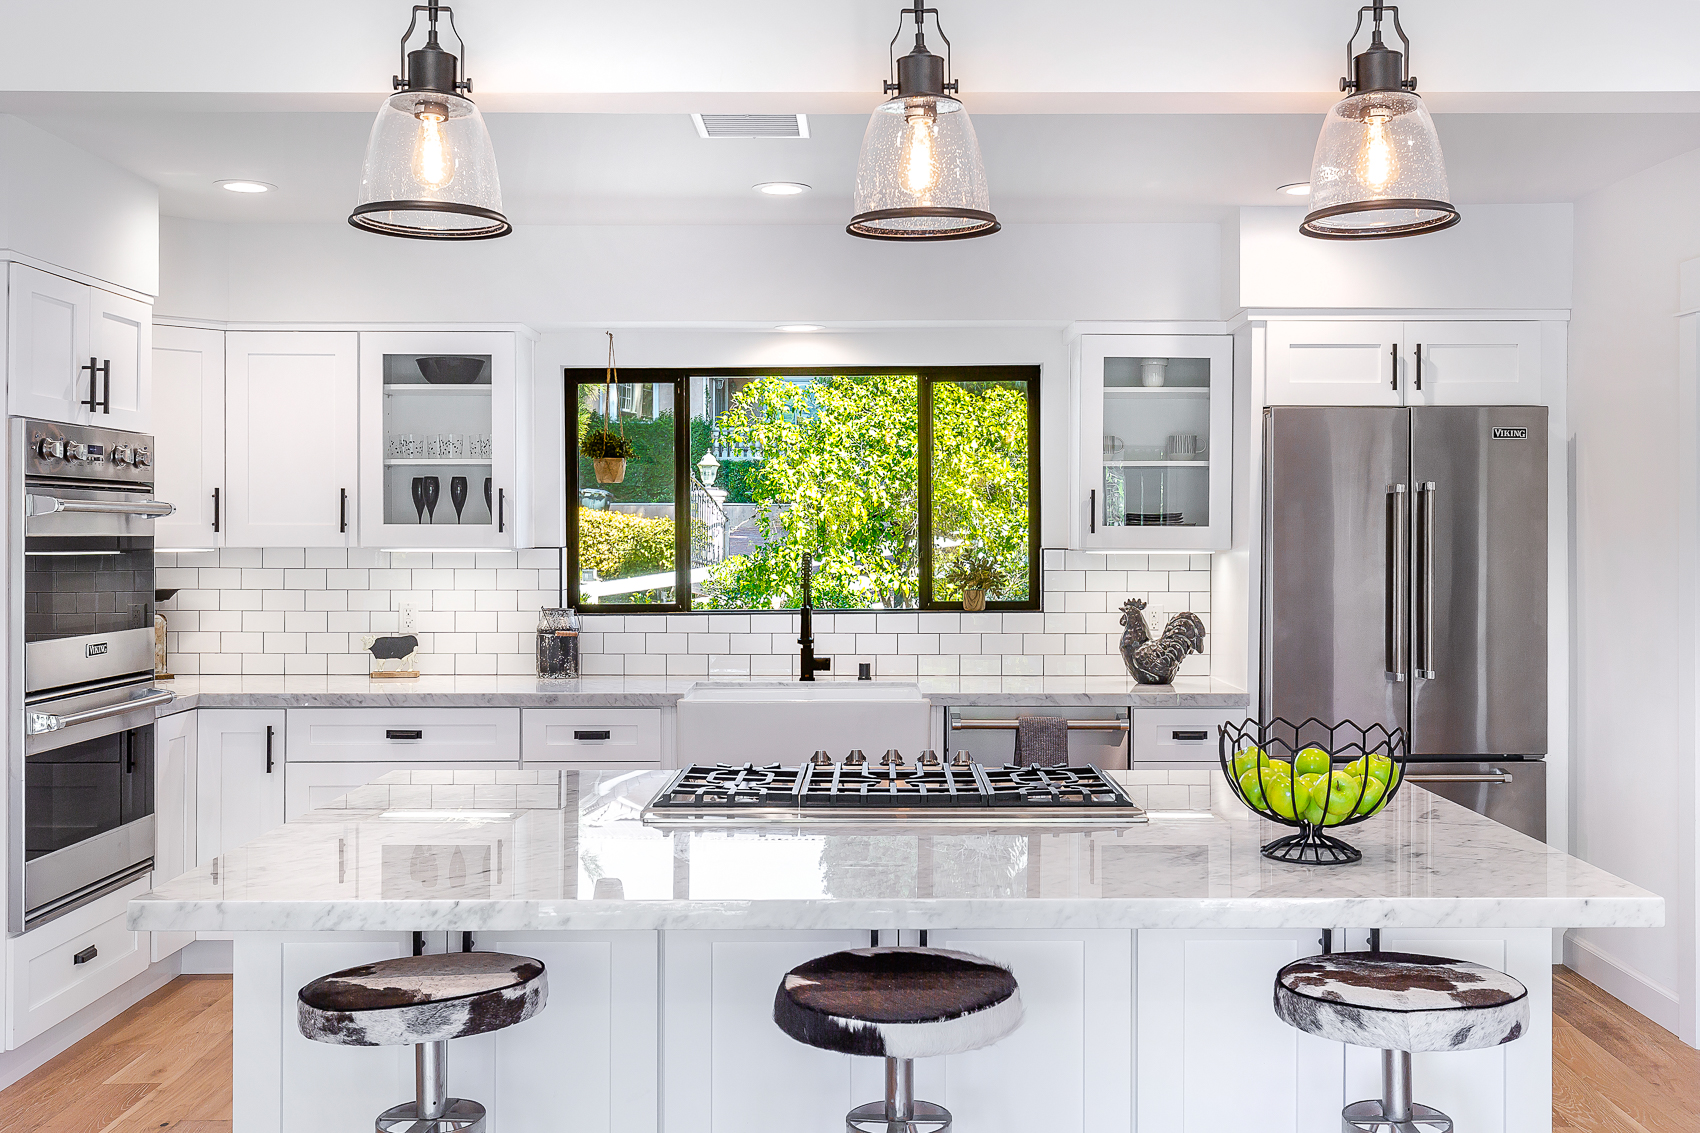 A gorgeous and gourmet kitchen at our latest property - Tanglewood Lane.